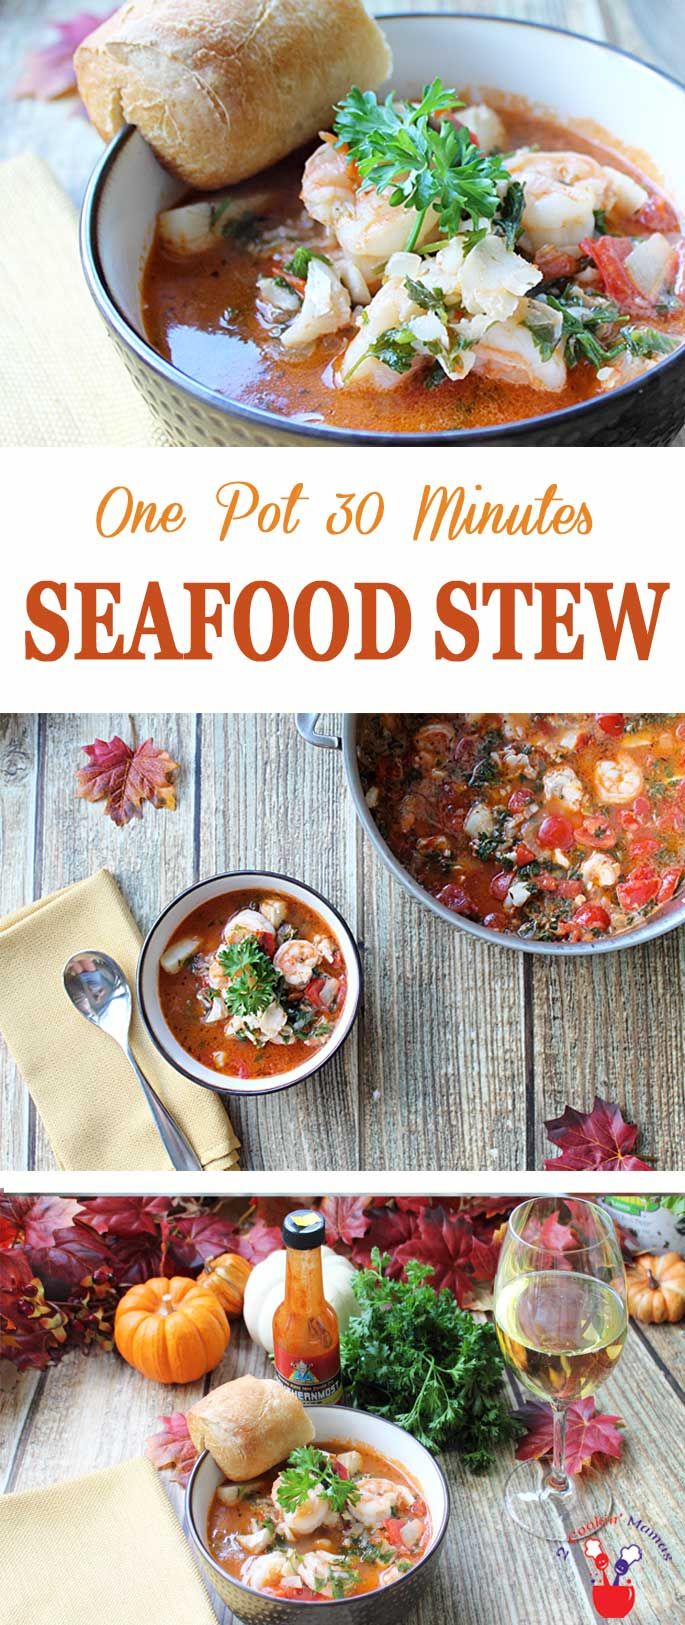 A one pot 30 minute seafood stew that's full of fi…